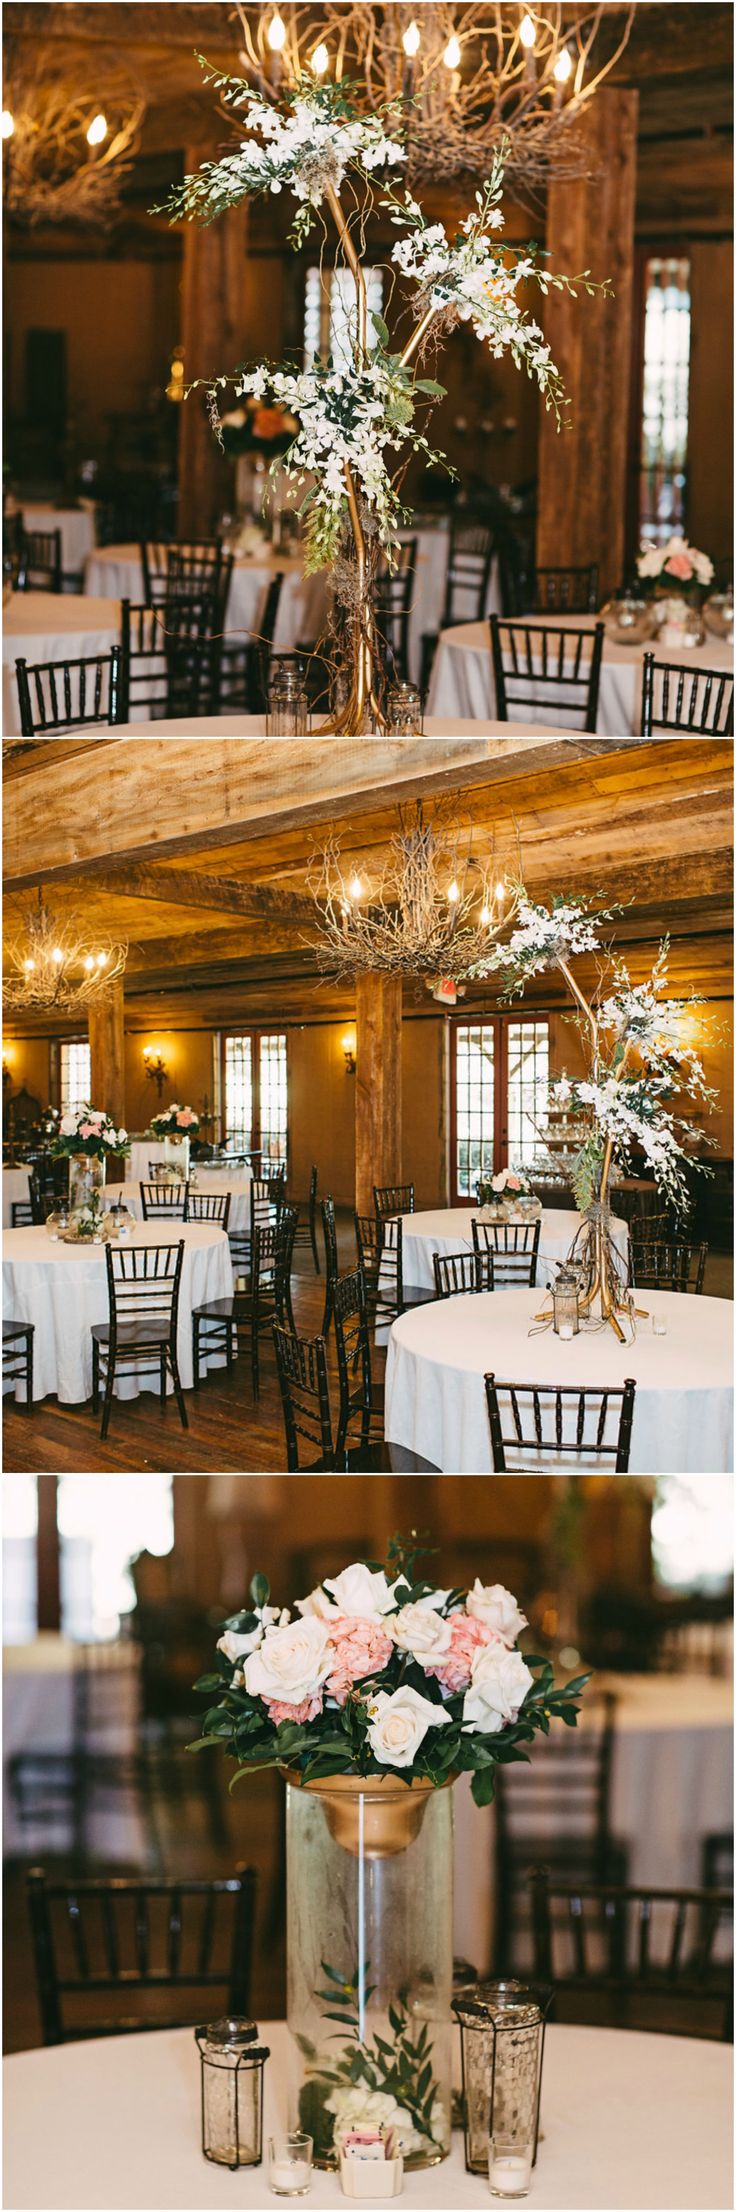 ideas for rustic wedding reception%0A Wedding reception d  cor  rustic venue  twig chandeliers  white and pink  rose centerpieces